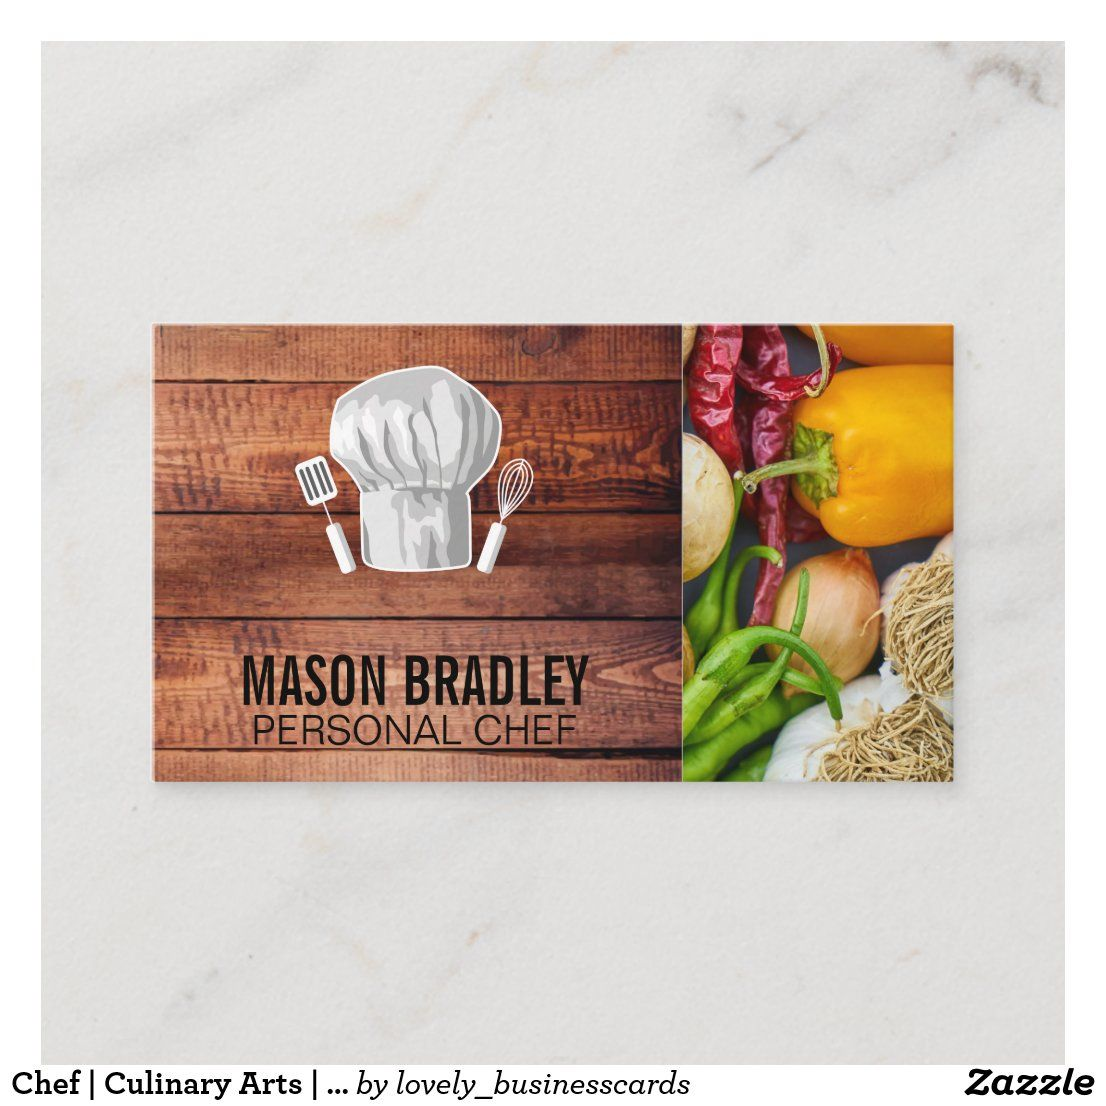 Chef Culinary Arts Produce Vegetables Business Card Zazzle Com Culinary Arts Colorful Business Card Culinary